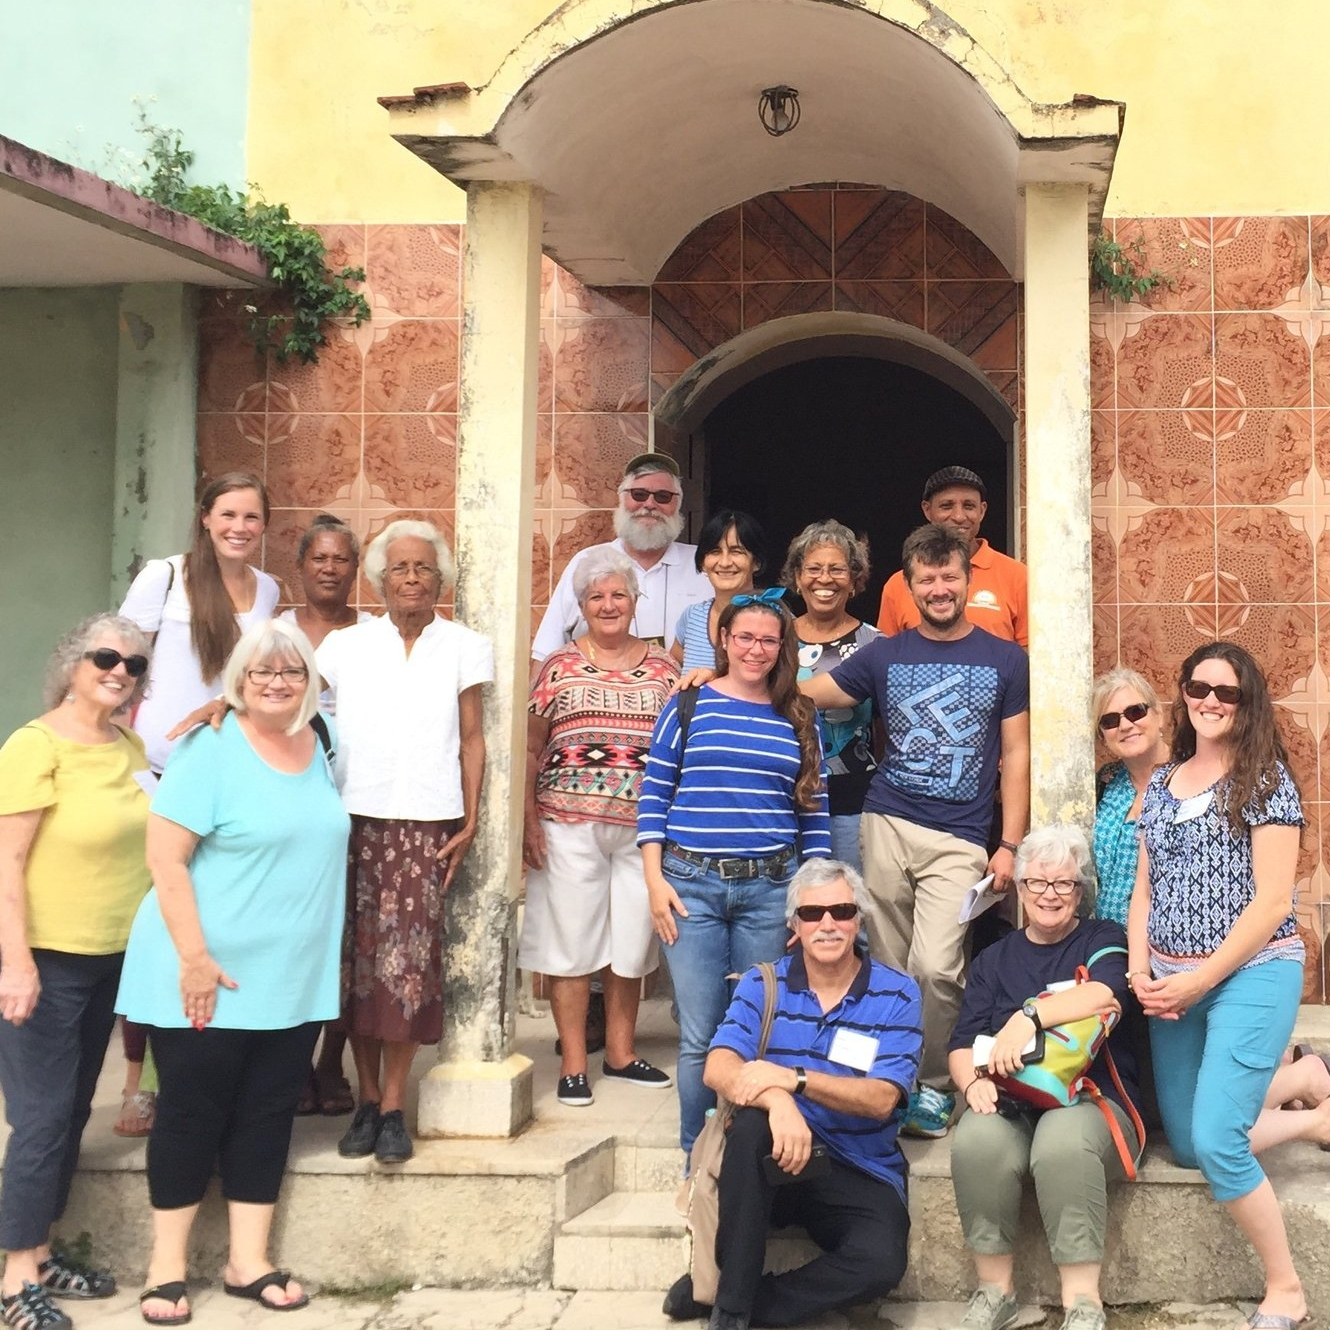 Our team on the steps of Resurrection Church in Sabanilla